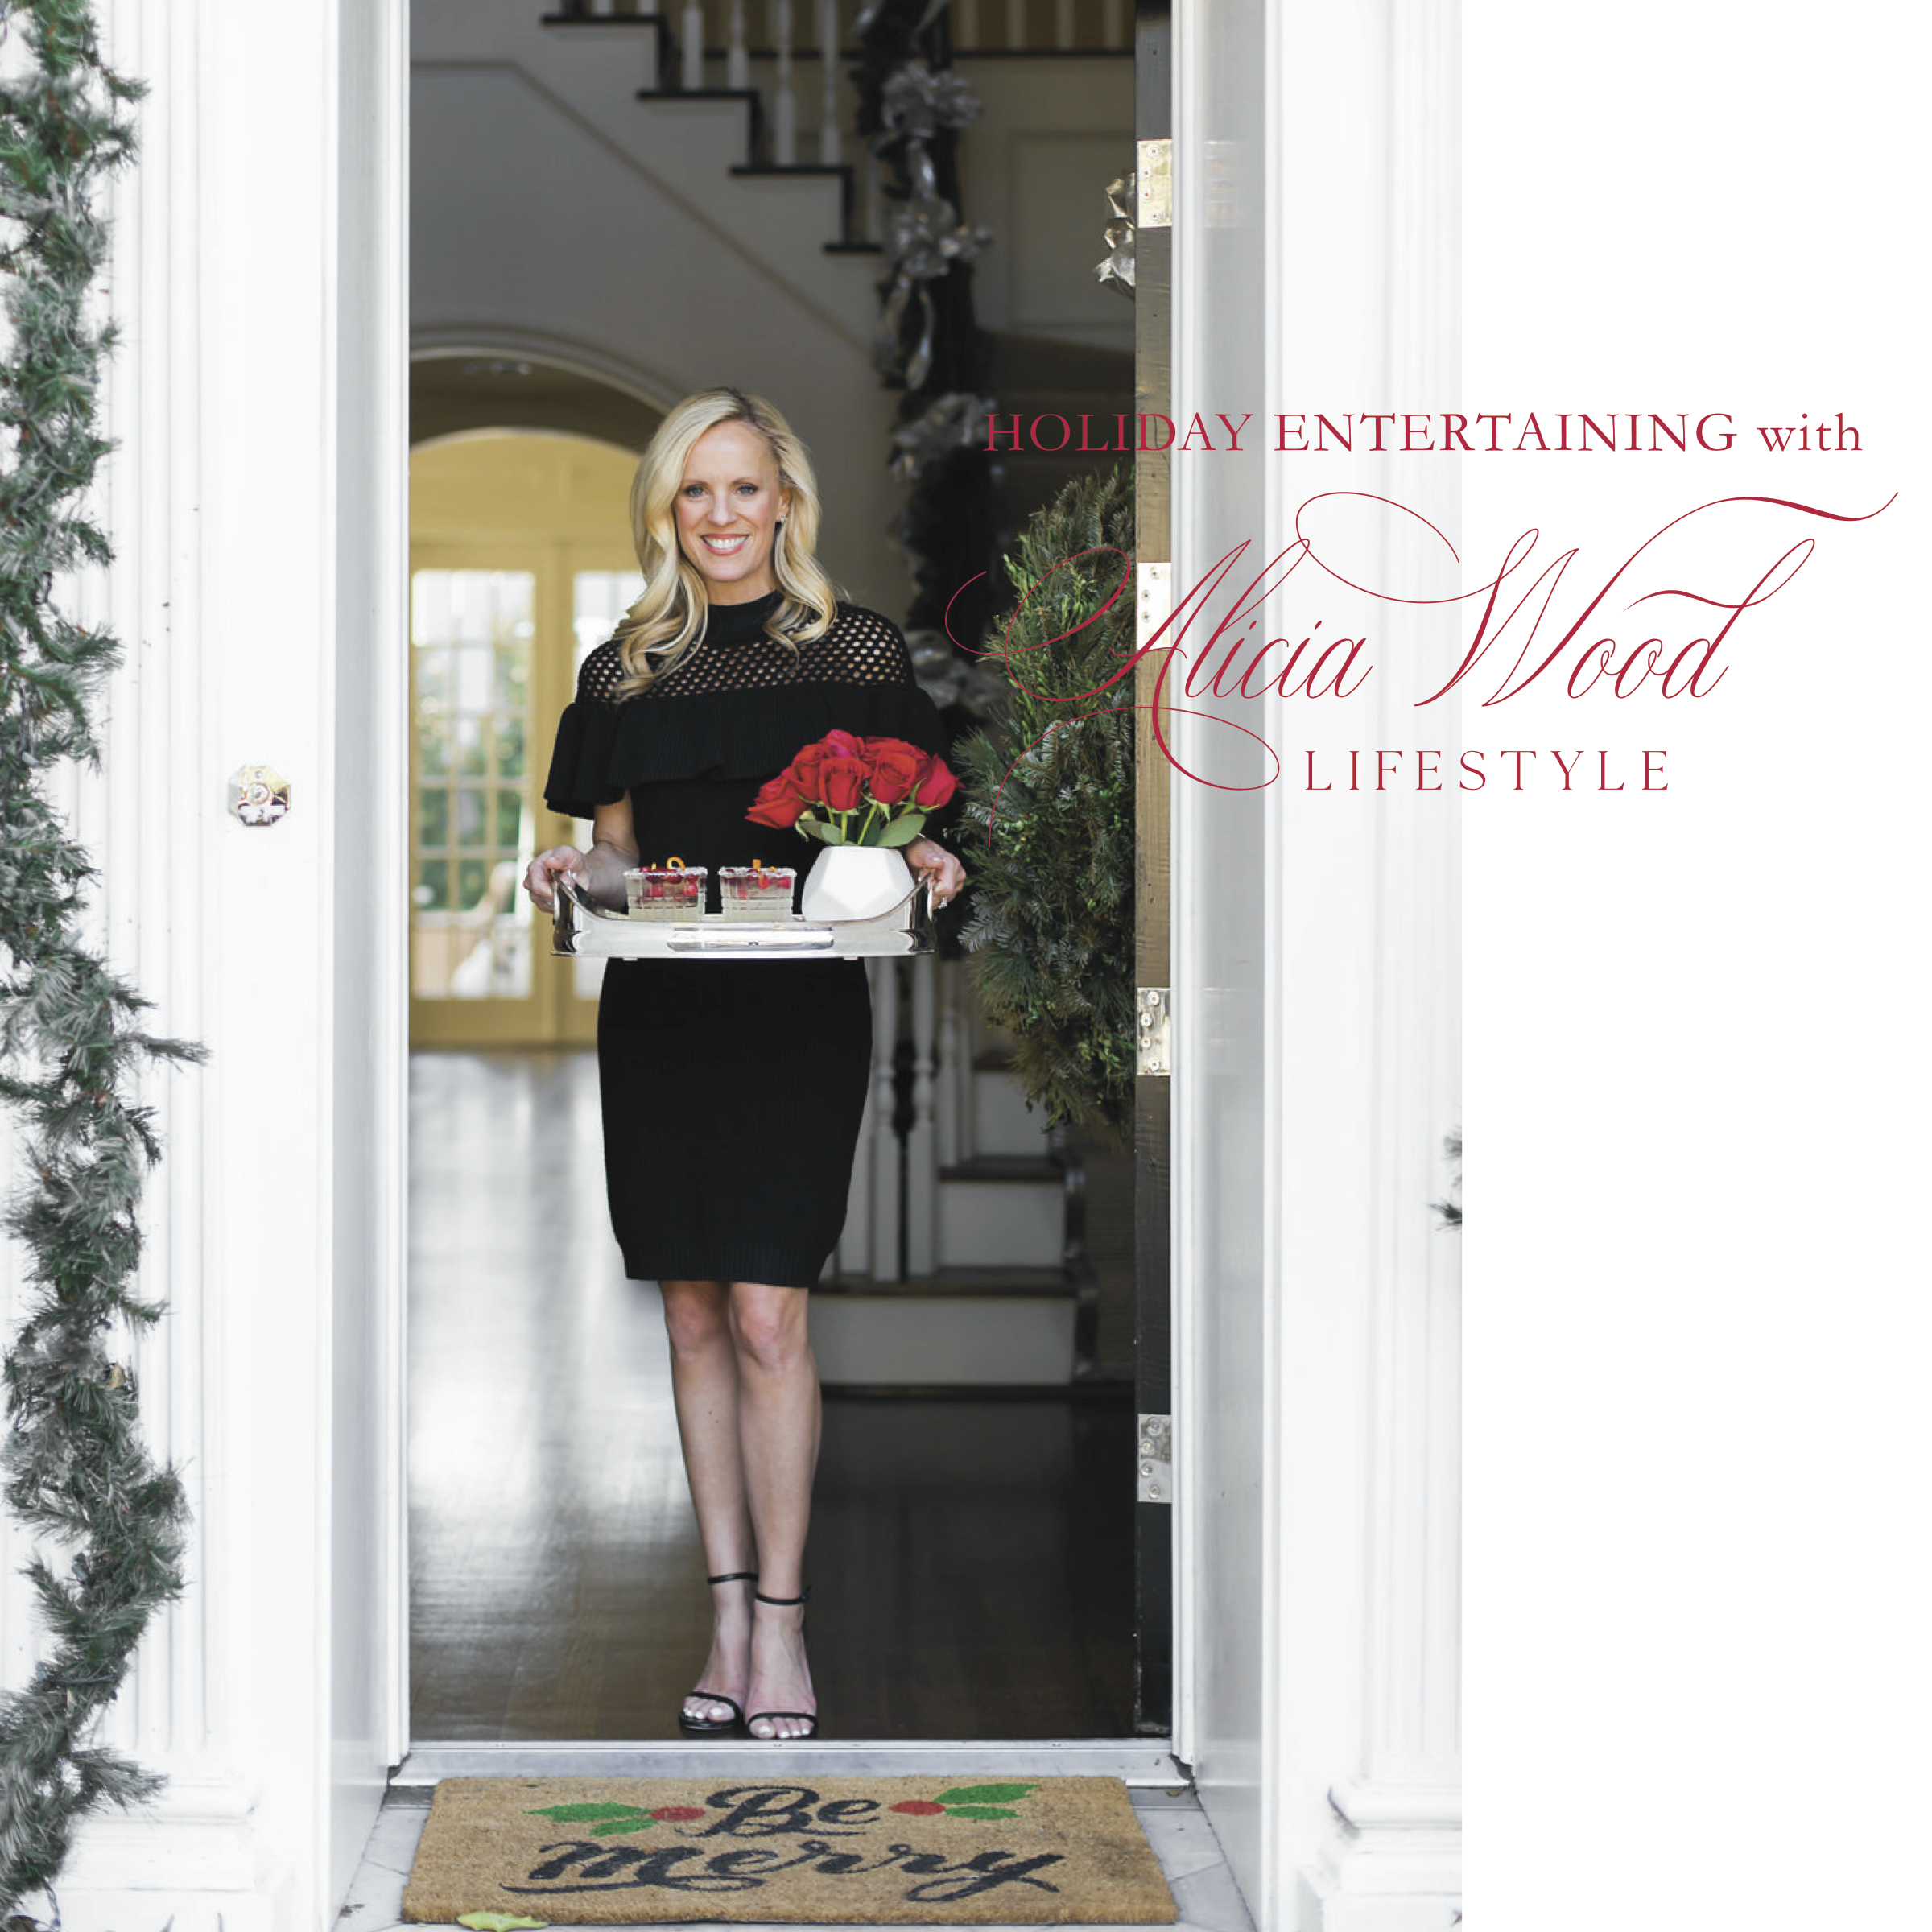 Alicia Wood Lifestyle Holiday Entertaining eBook